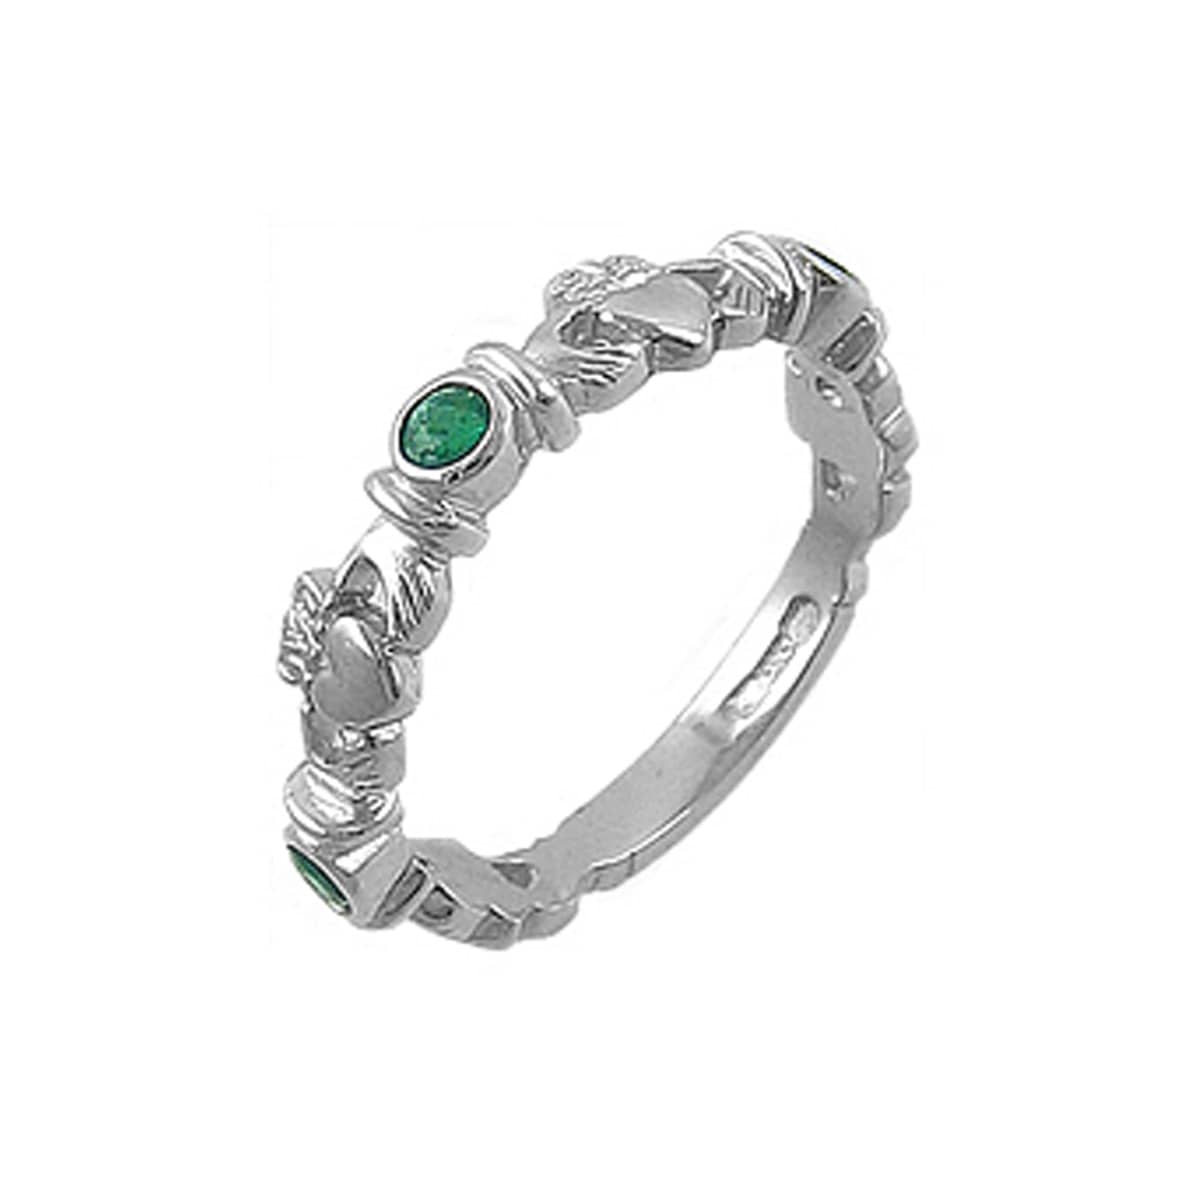 White Gold 3 Emerald Claddagh Ring